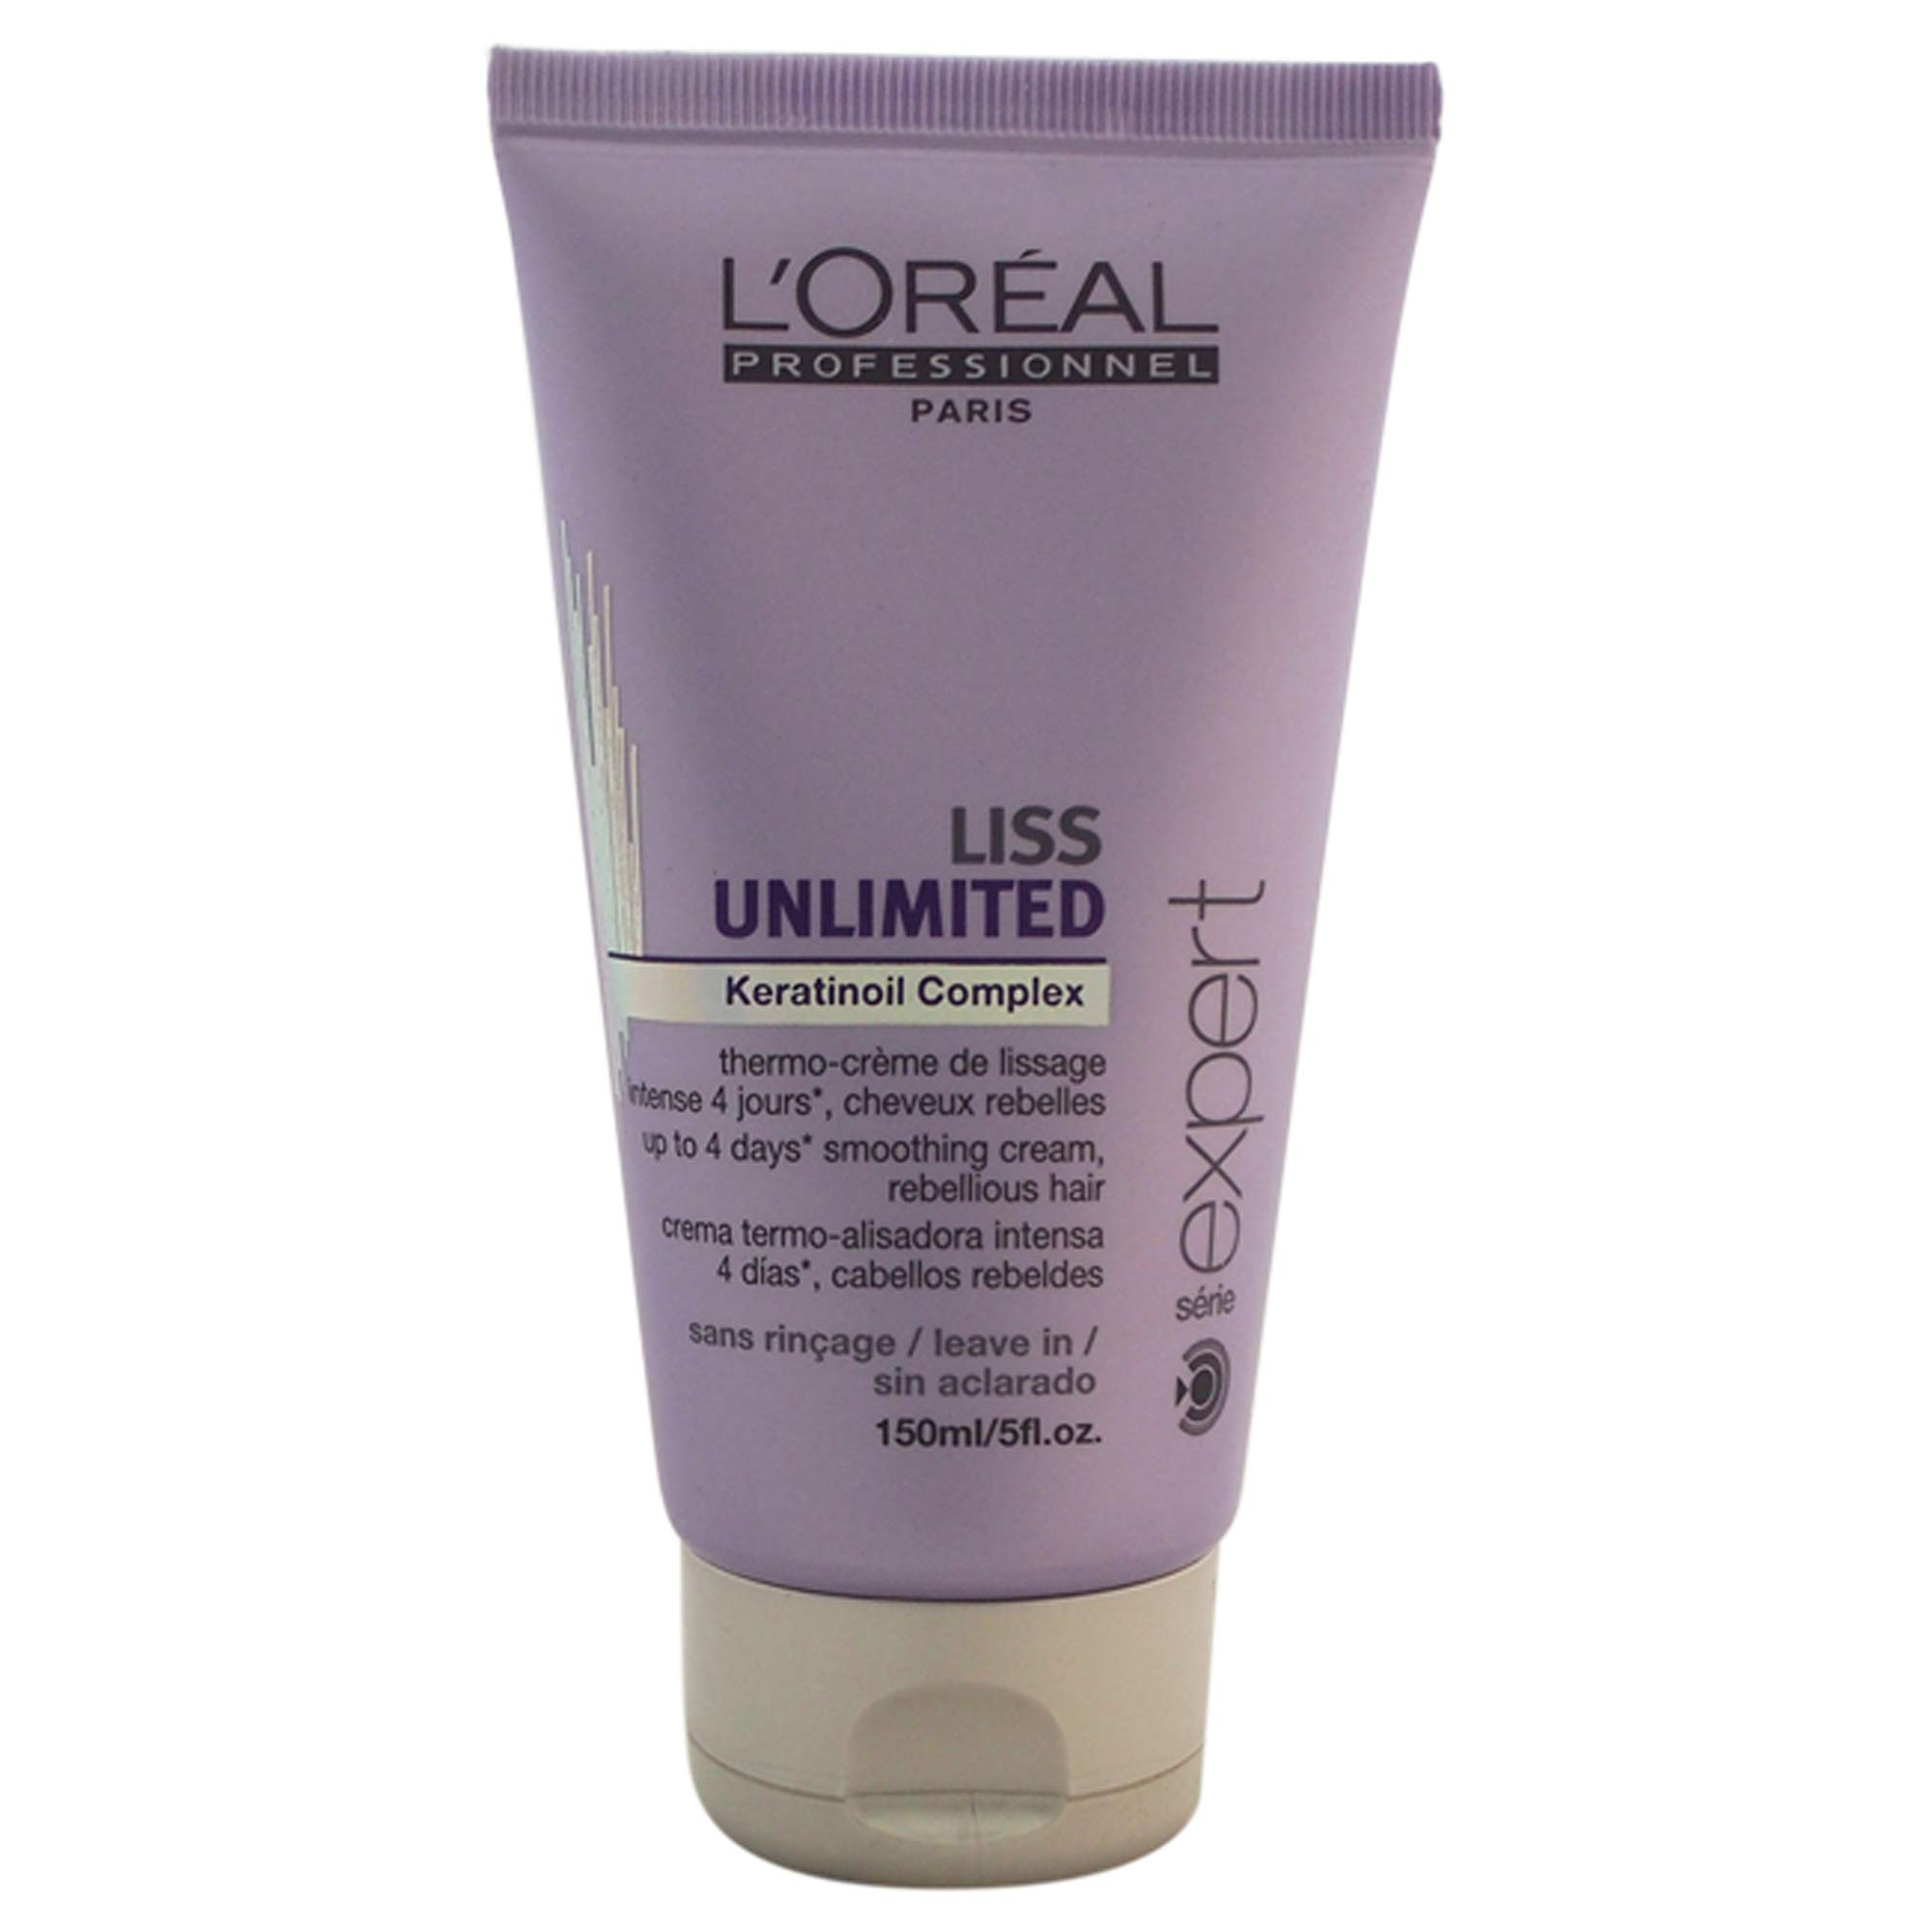 L'Oreal Professional Serie Expert Liss Unlimited Keratinoil Complex Cream, 5 Ounce